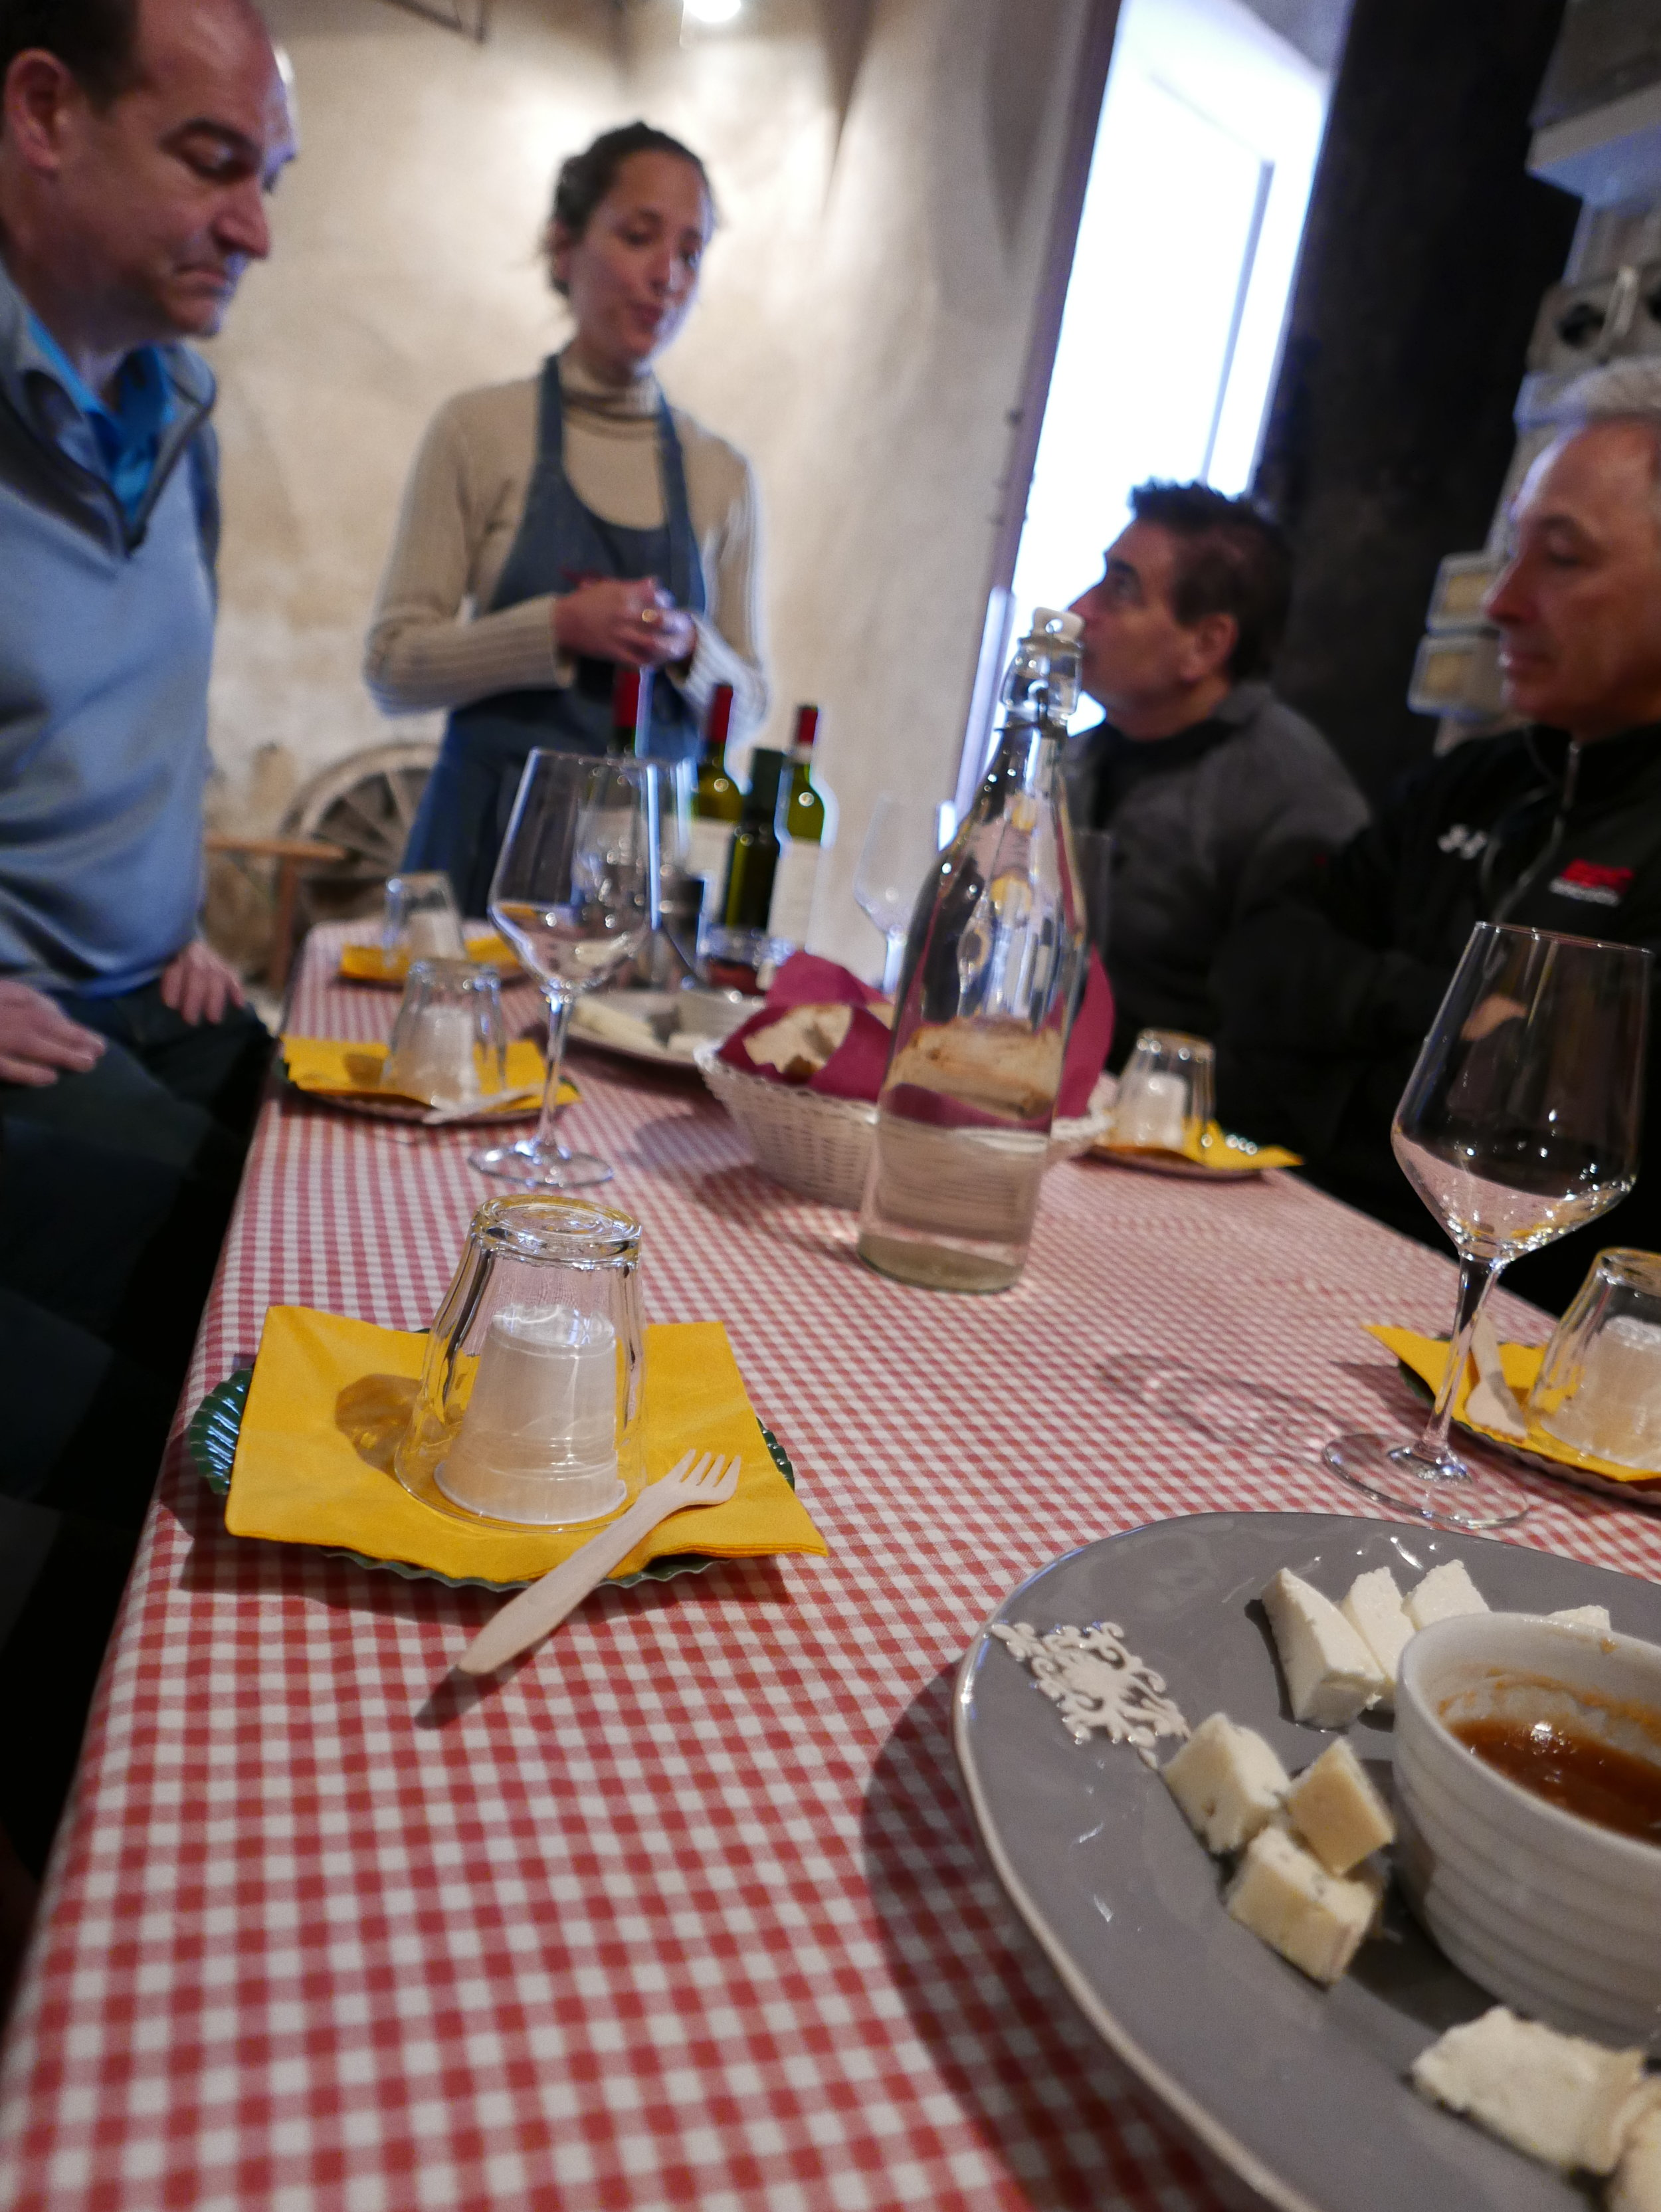 We were invited into an underground cellar to taste wine, sheep cheese, and olive oil -- all made at the winery. Salute!